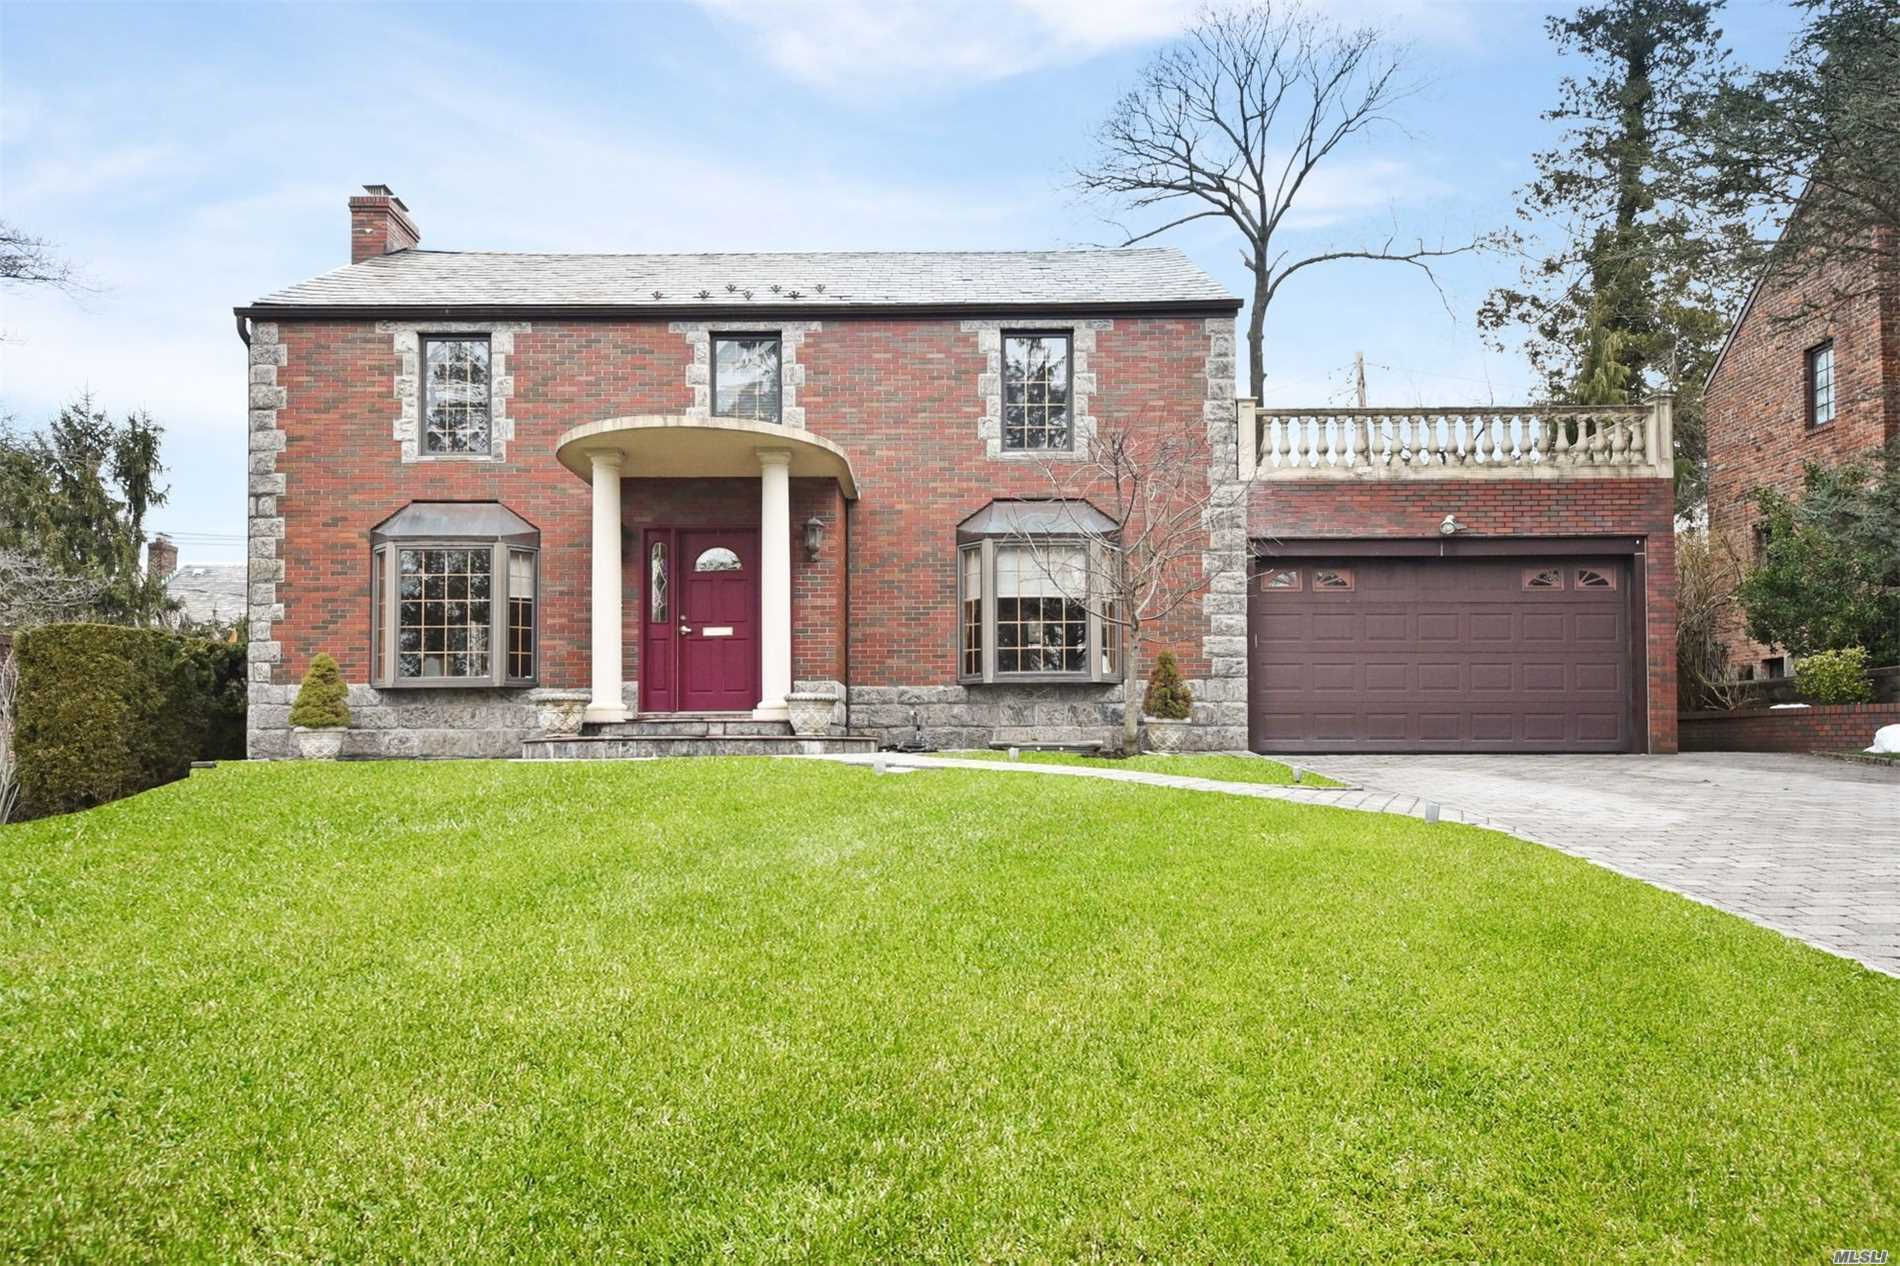 Estate Sale ! Beautiful Brick Ch Colonial, Rebuilt & Extended In 2004. Like New! Possible 4th Br W/Proper Permits. Fin. Bas./ Tiled Floor, Playrm / Hardwd Flr. Msuite/Jacuzzi. Kit/Island. Mud Rm, Cac, Alarm, Oversized 1 Car Gar/ Tiled Floor. Within Close Proximity To Strathmore Vanderbilt Country Club Which Offers Tennis, Pool, Restaurant And Summer Sport Program.